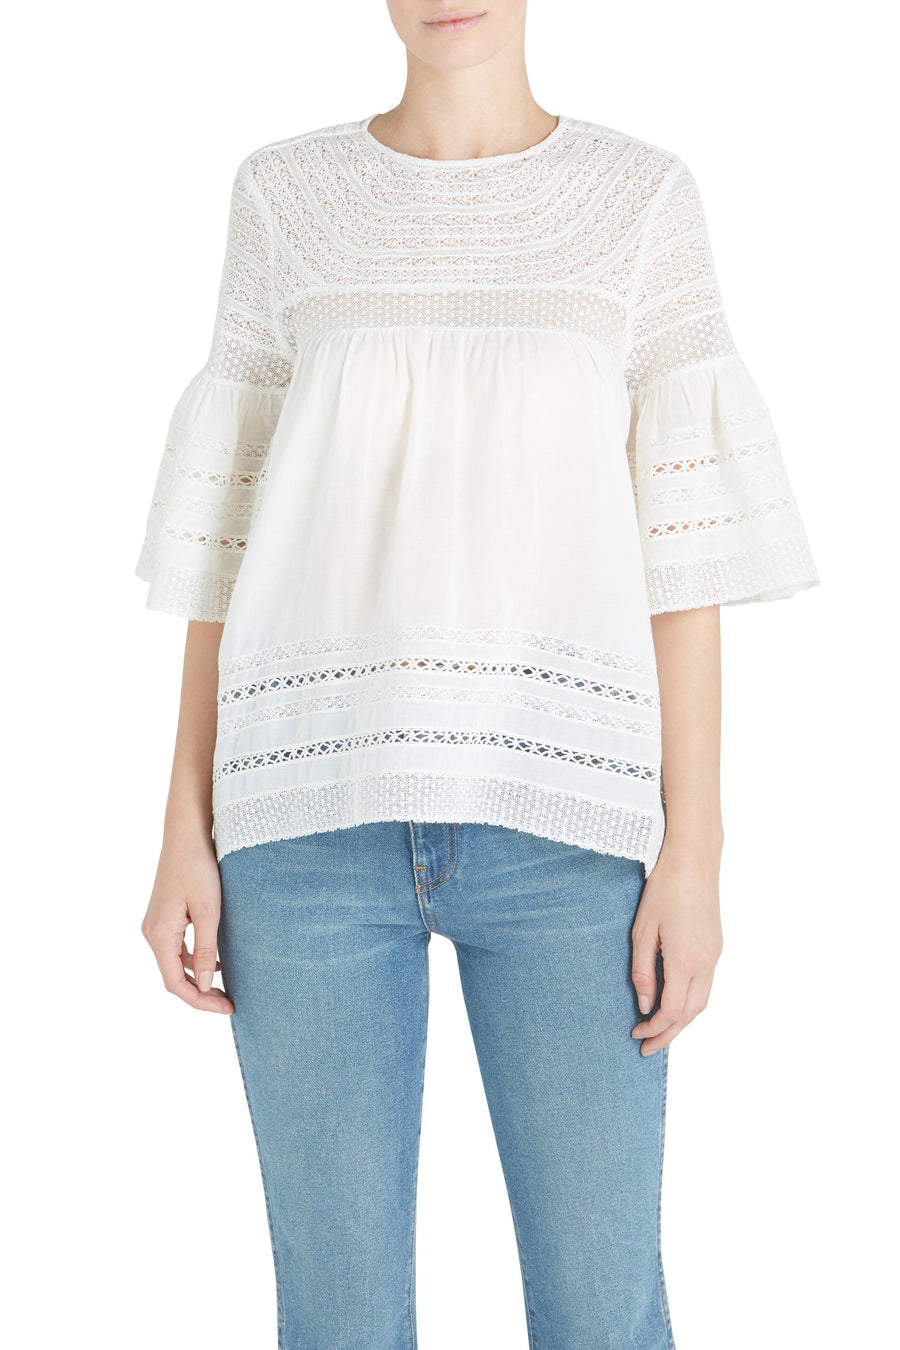 SEVI LACE TOP